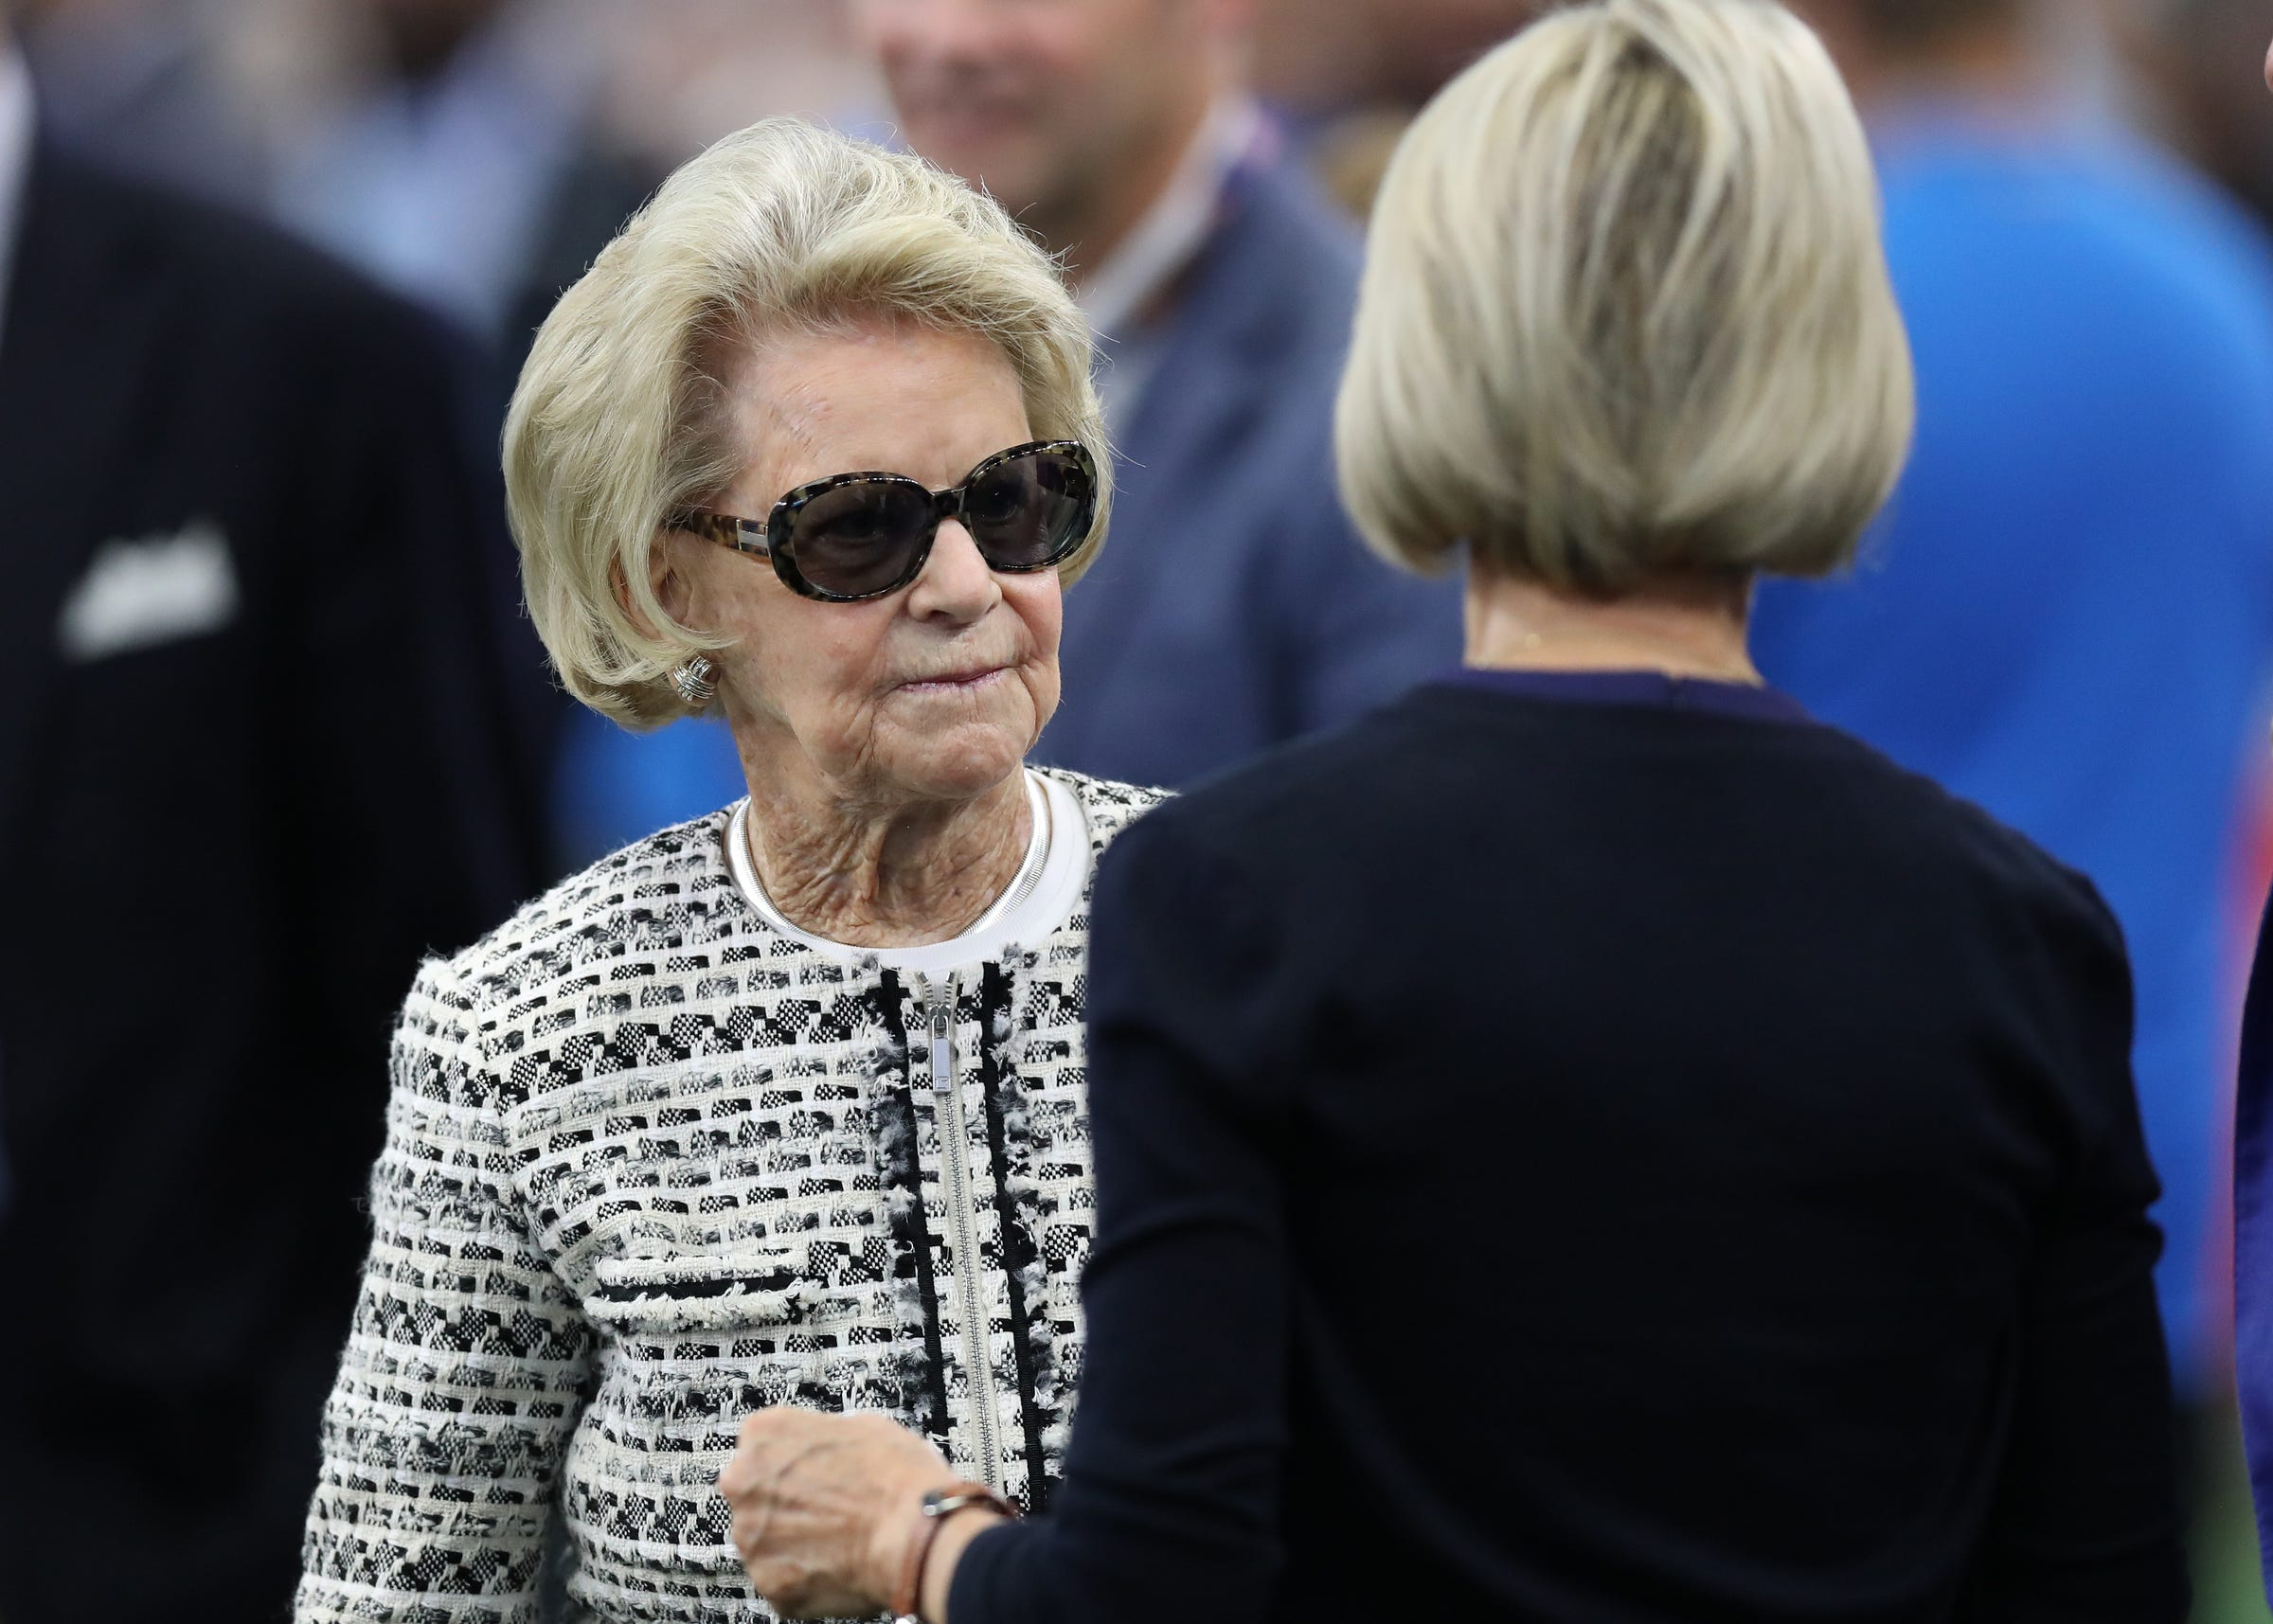 Lions owner Martha Ford on the sidelines prior to the game against the Cowboys on Sunday, Sept. 30, 2018, in Arlington, Texas.